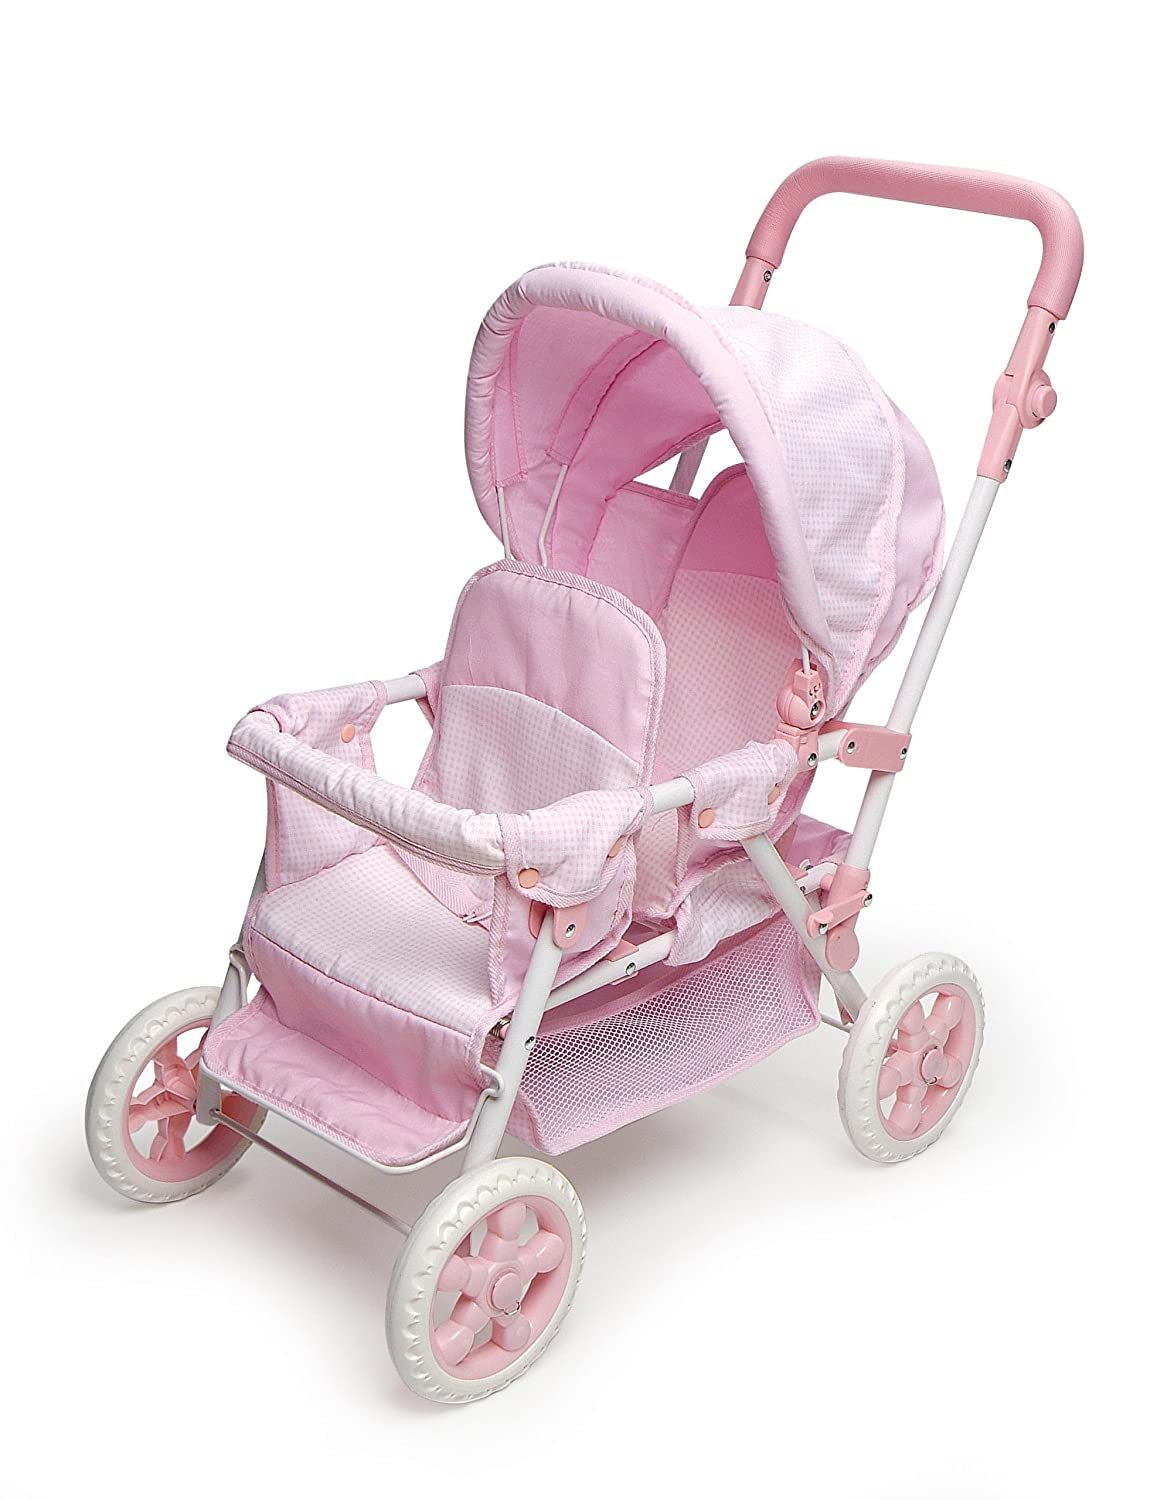 Badger Basket Folding Double Front-to-Back Doll Stroller (fits American Girl dolls), Pink/White